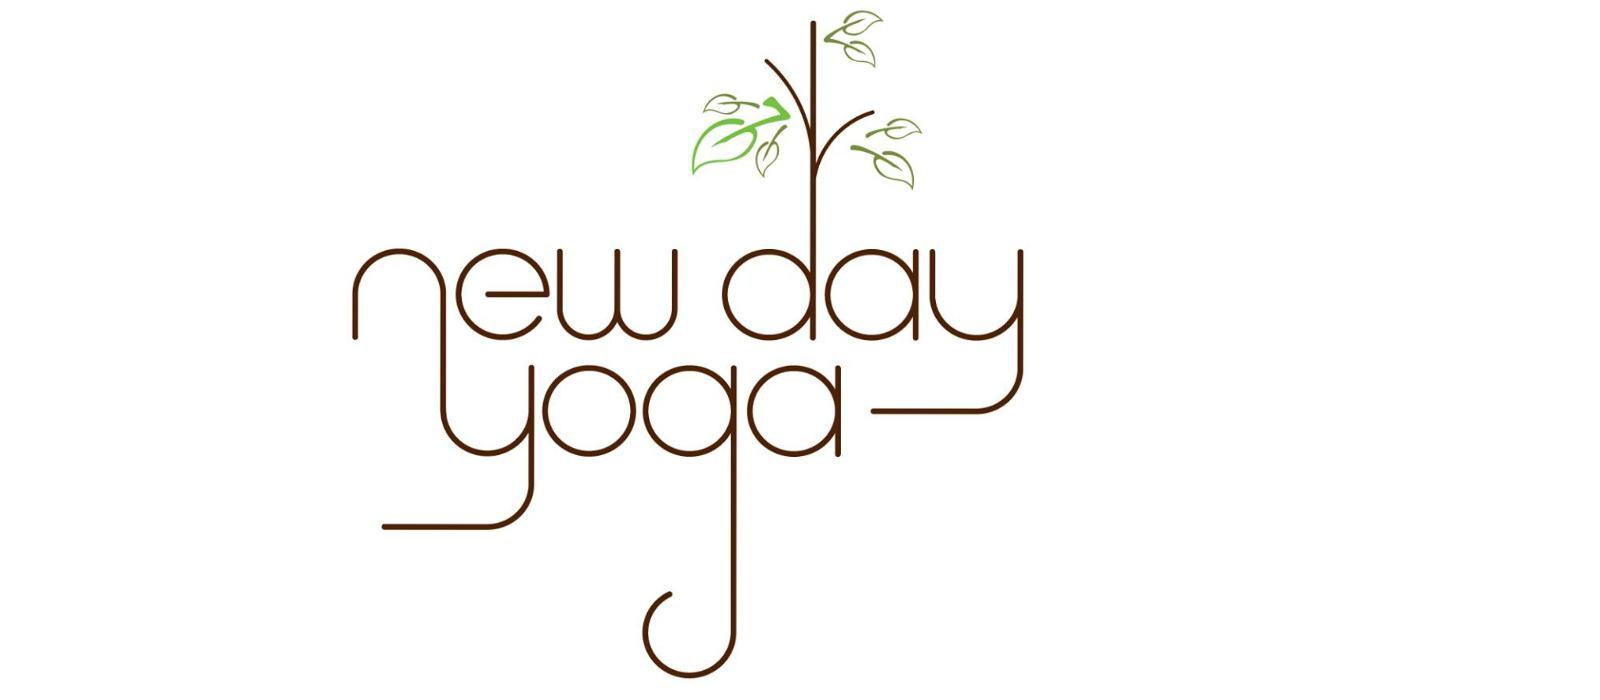 <div class='slider_caption'>		 <h1>Welcome to New Day Yoga</h1> 			<a class='slider-readmore' href='http://newdayyoga.net/?p=5'>Learn more about us</a>